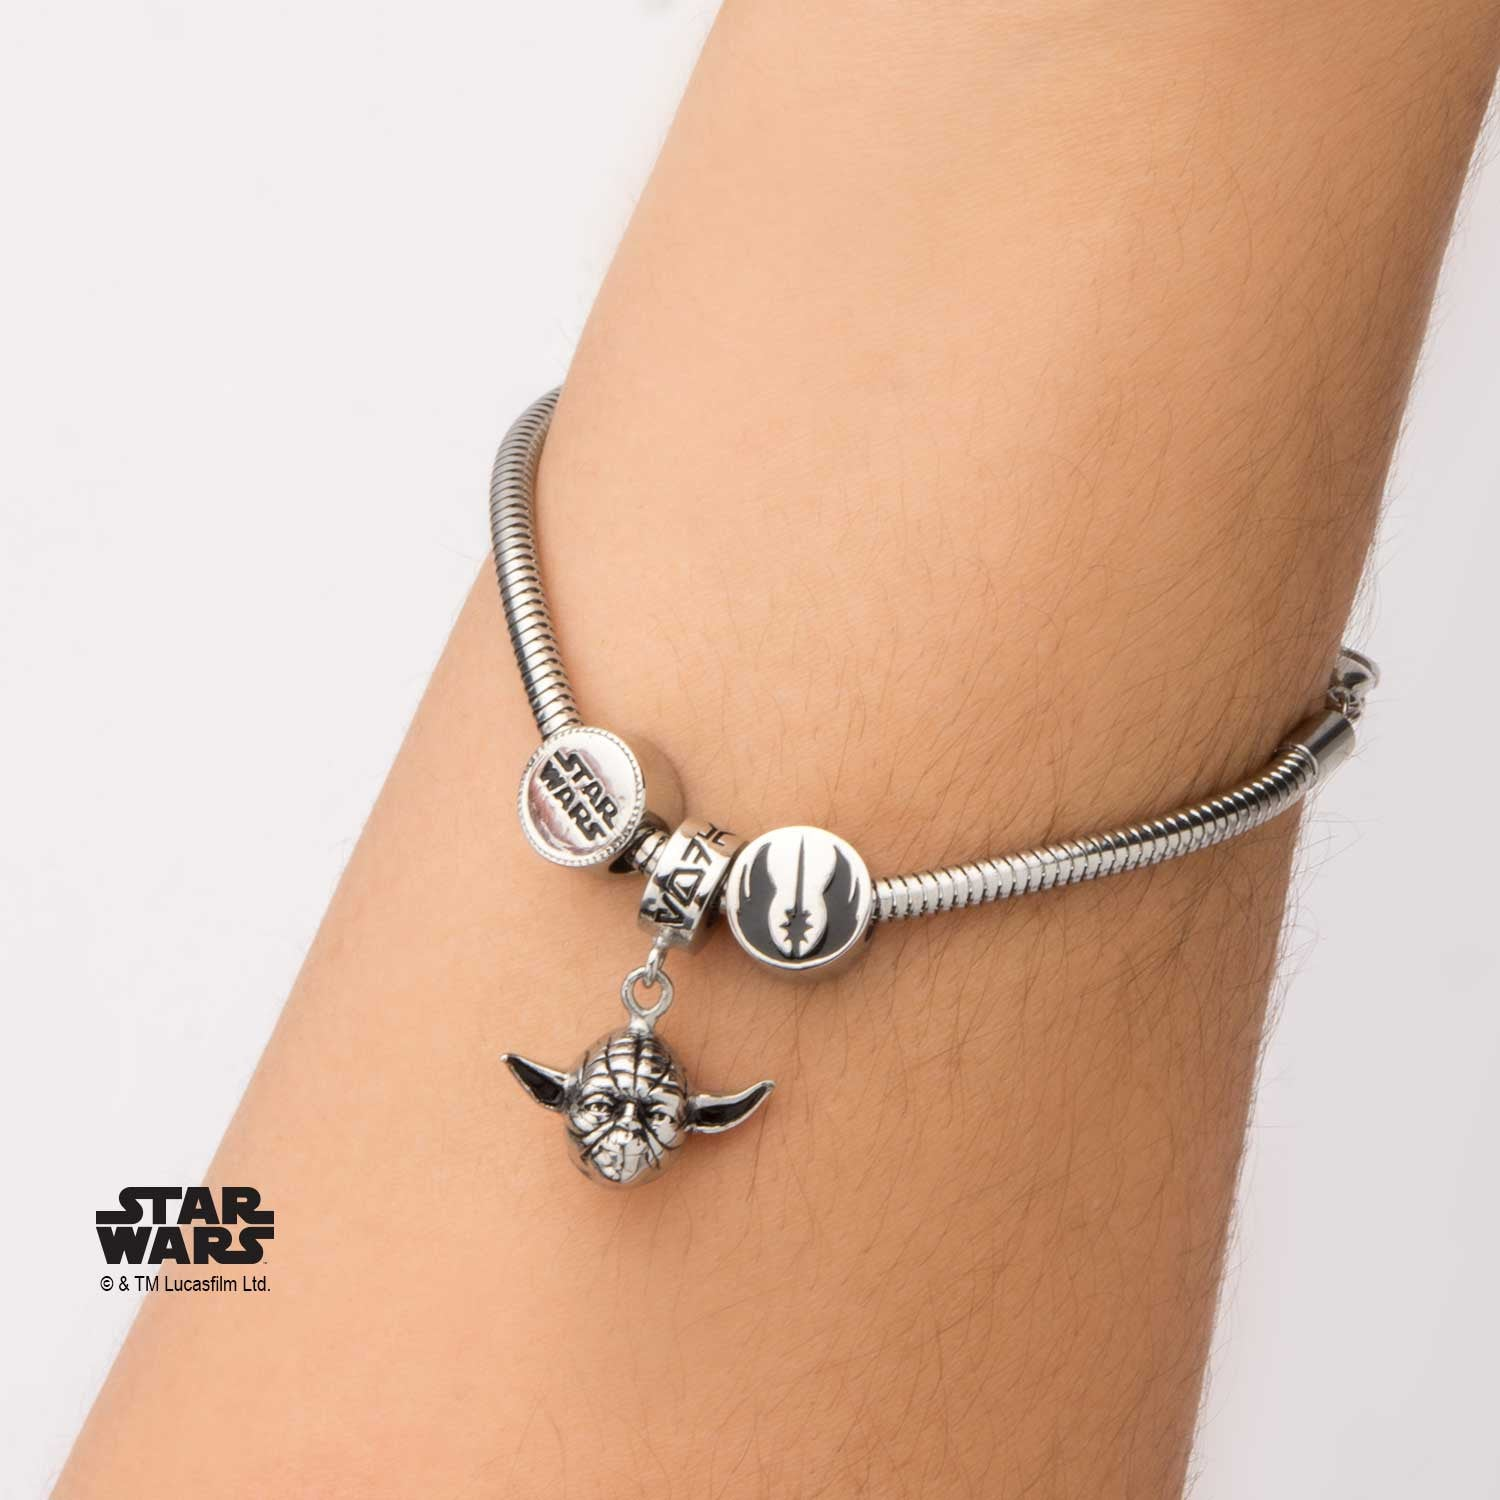 bangle bracelets charm bangles star bracelet trustmark yoda logo bead set stainless wars steel products